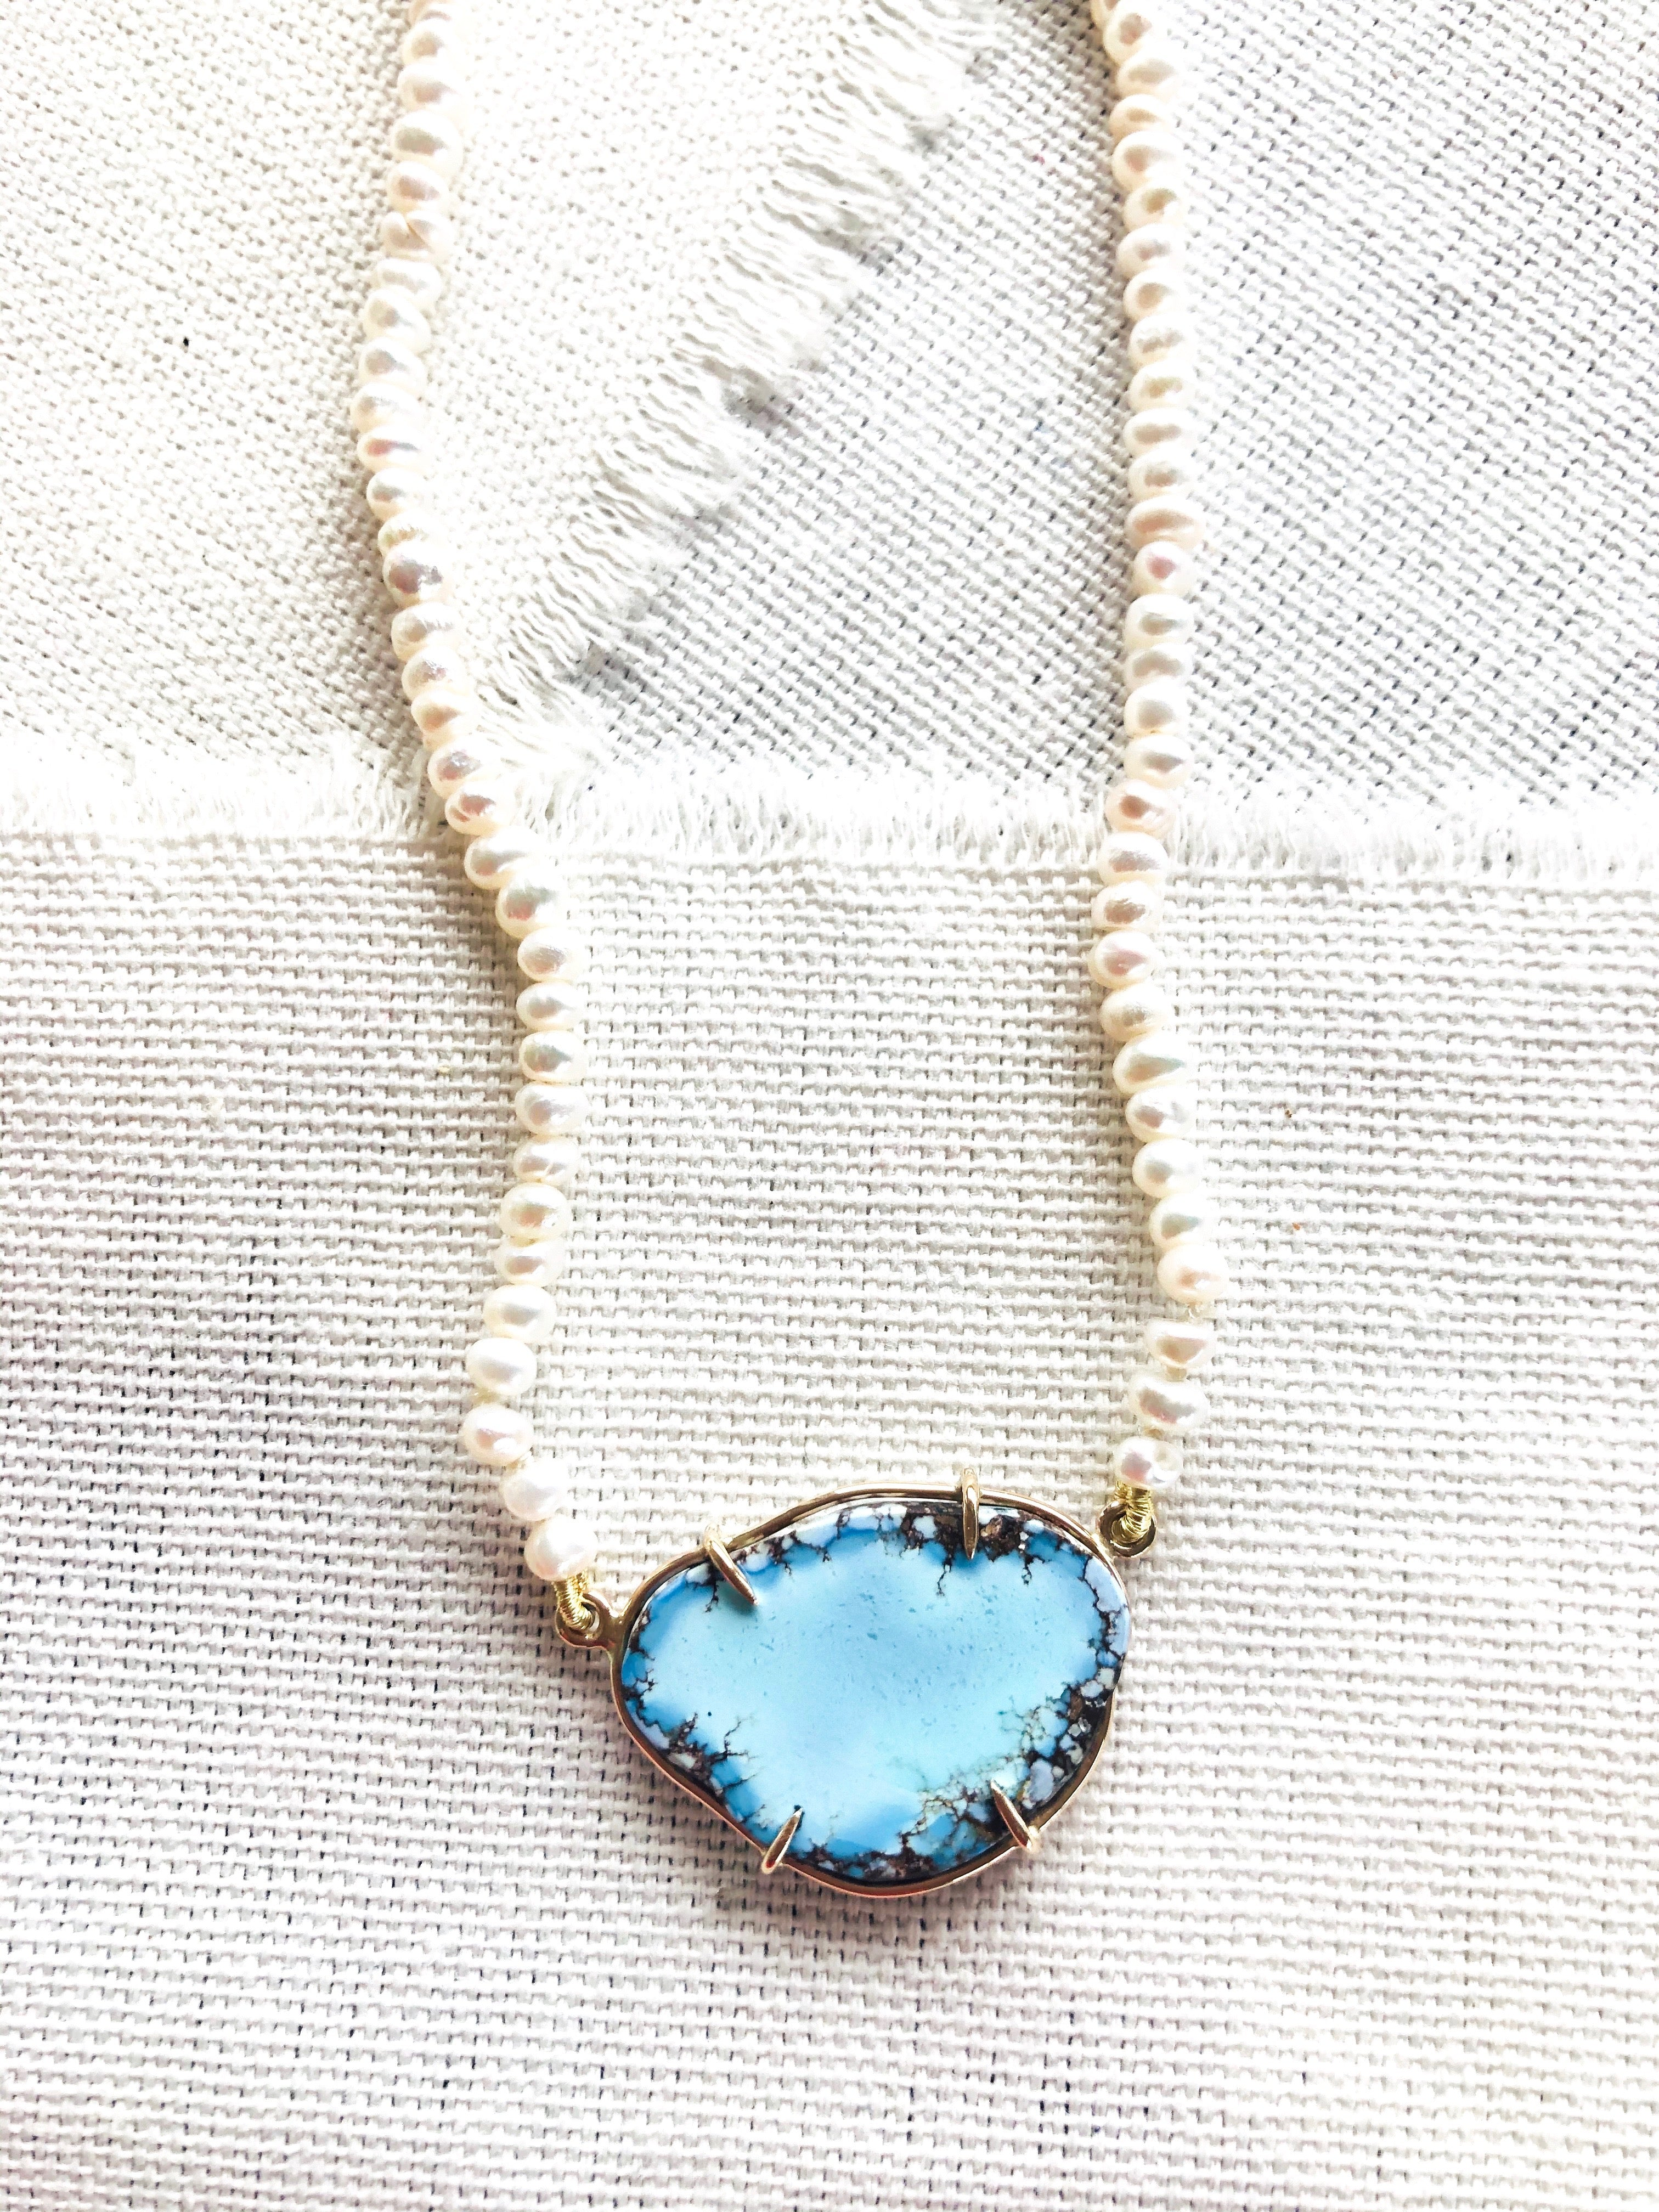 Let this beautiful effortlessly chic Kazakhstan turquoise necklace compliment your beach holiday. Kazakhstan turquoise is also known as Golden Hills Turquoise or Lavender Turquoise.